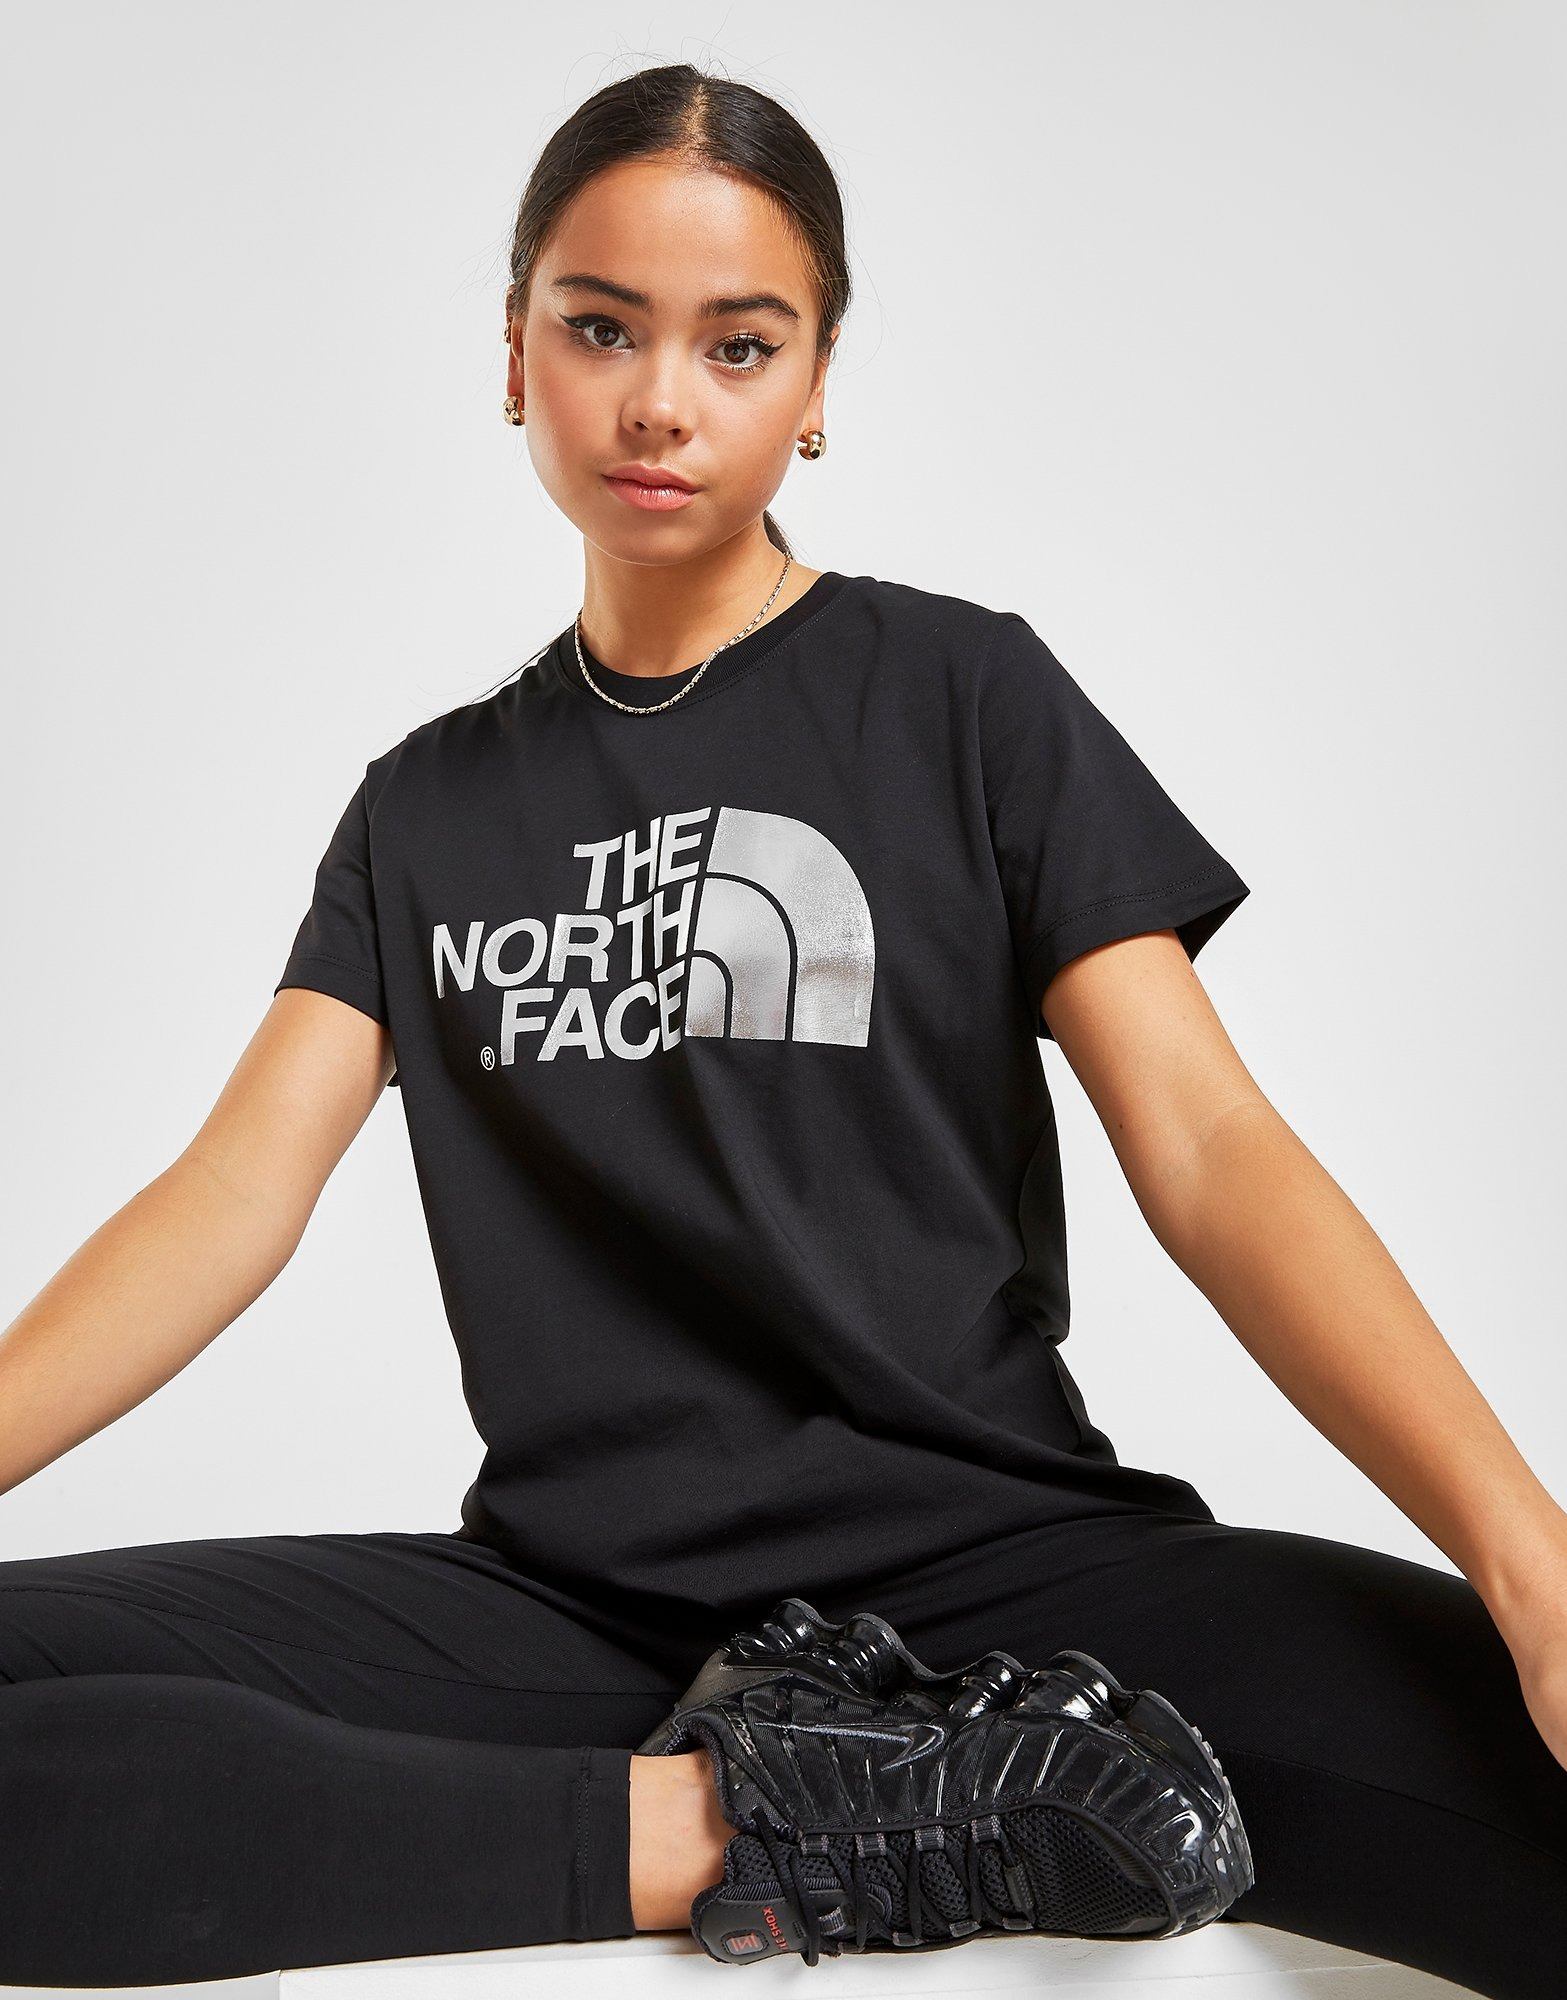 The North Face Dome Logo Boyfriend T Shirt by The North Face